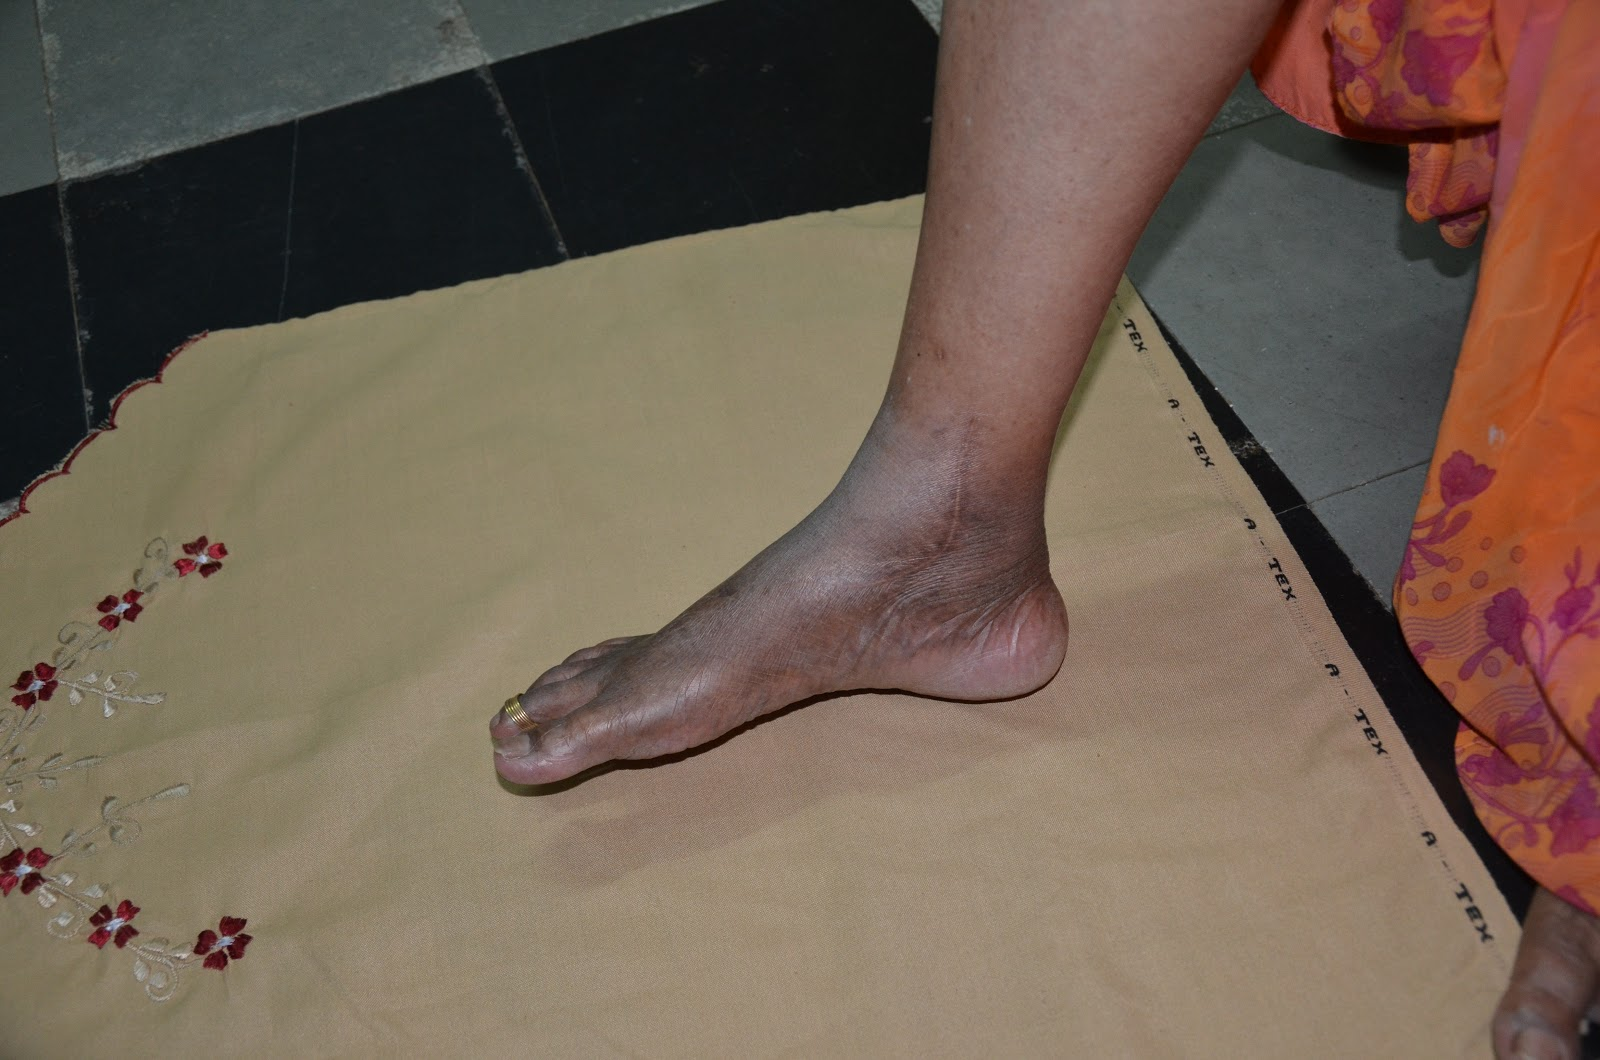 TALUS FRACTURE IN A DIABETIC - FUNCTIONAL OUTCOME